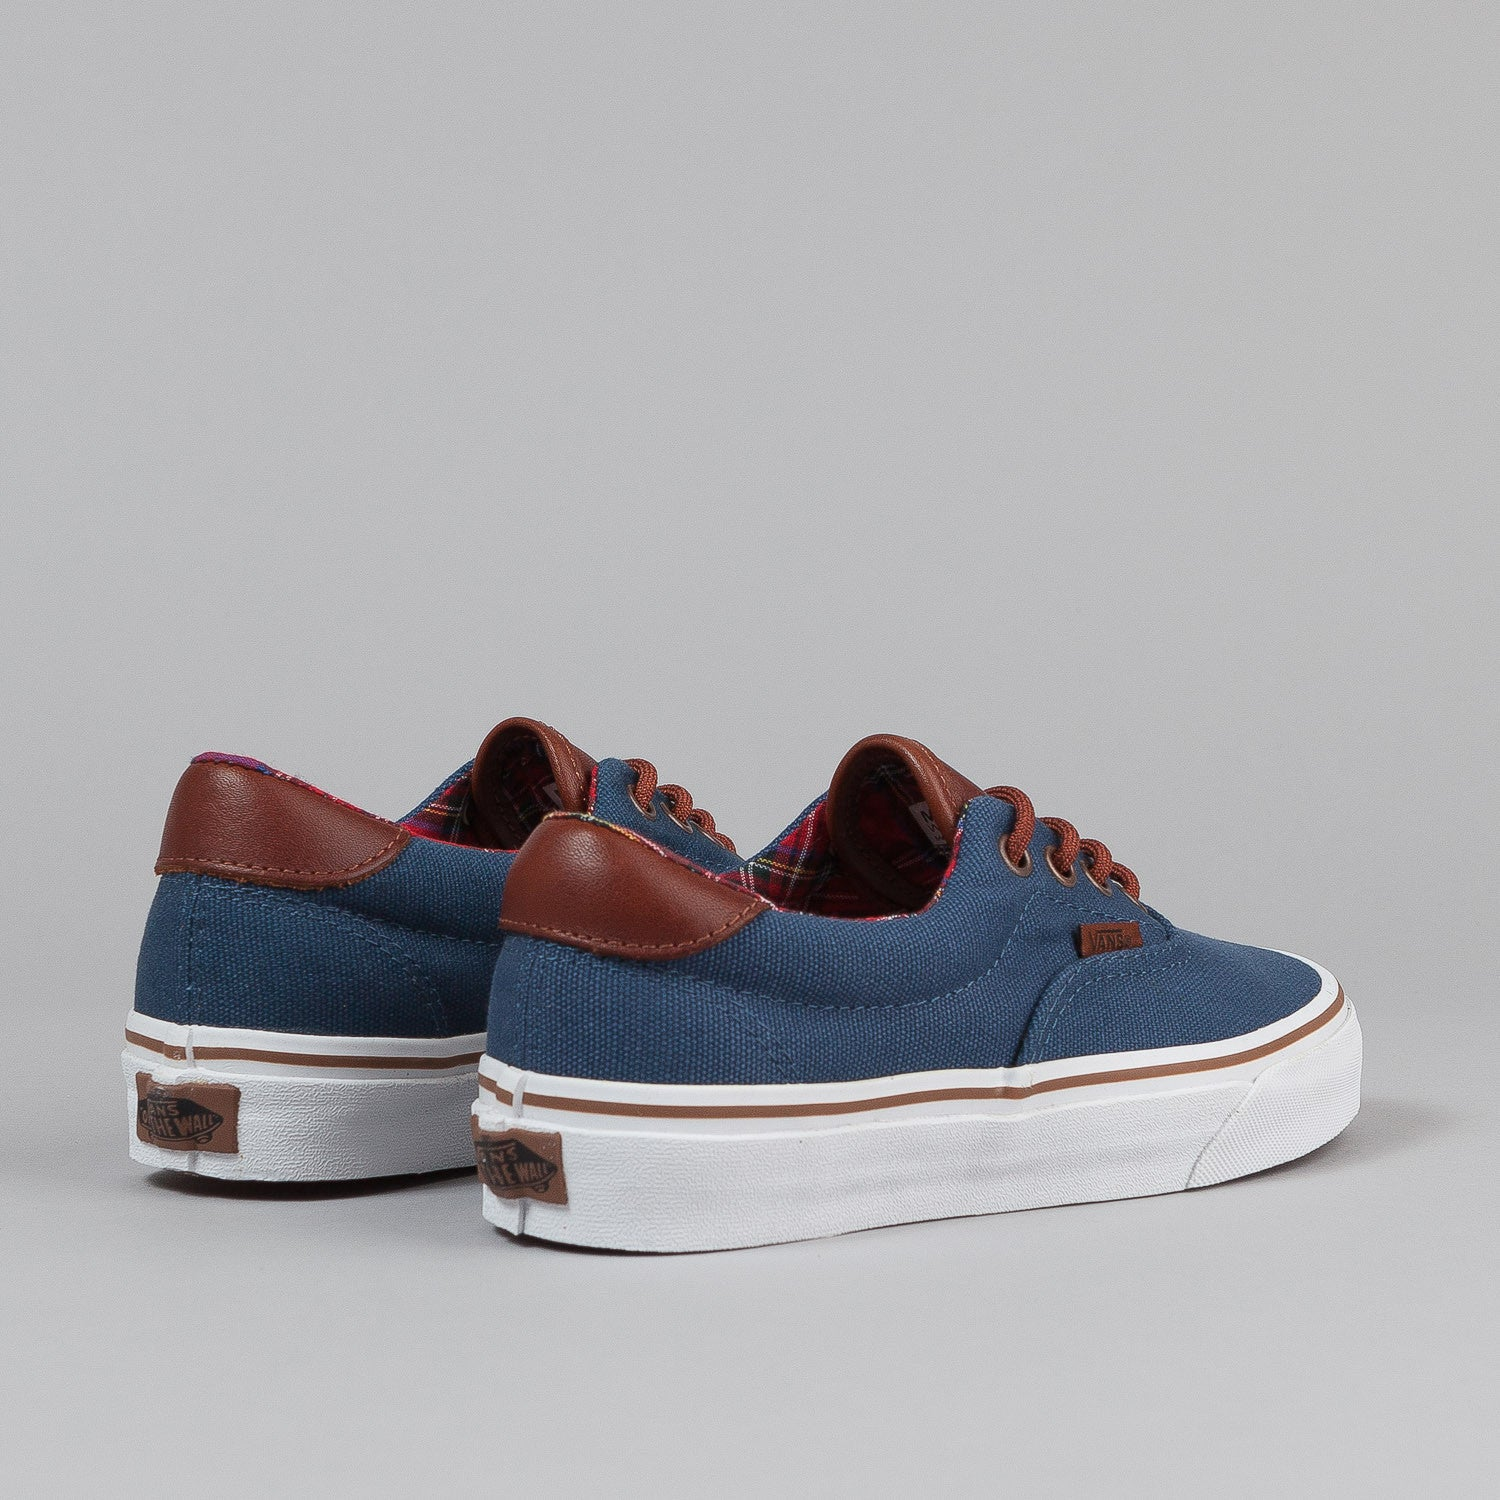 Vans Era Shoes - Dark Denim